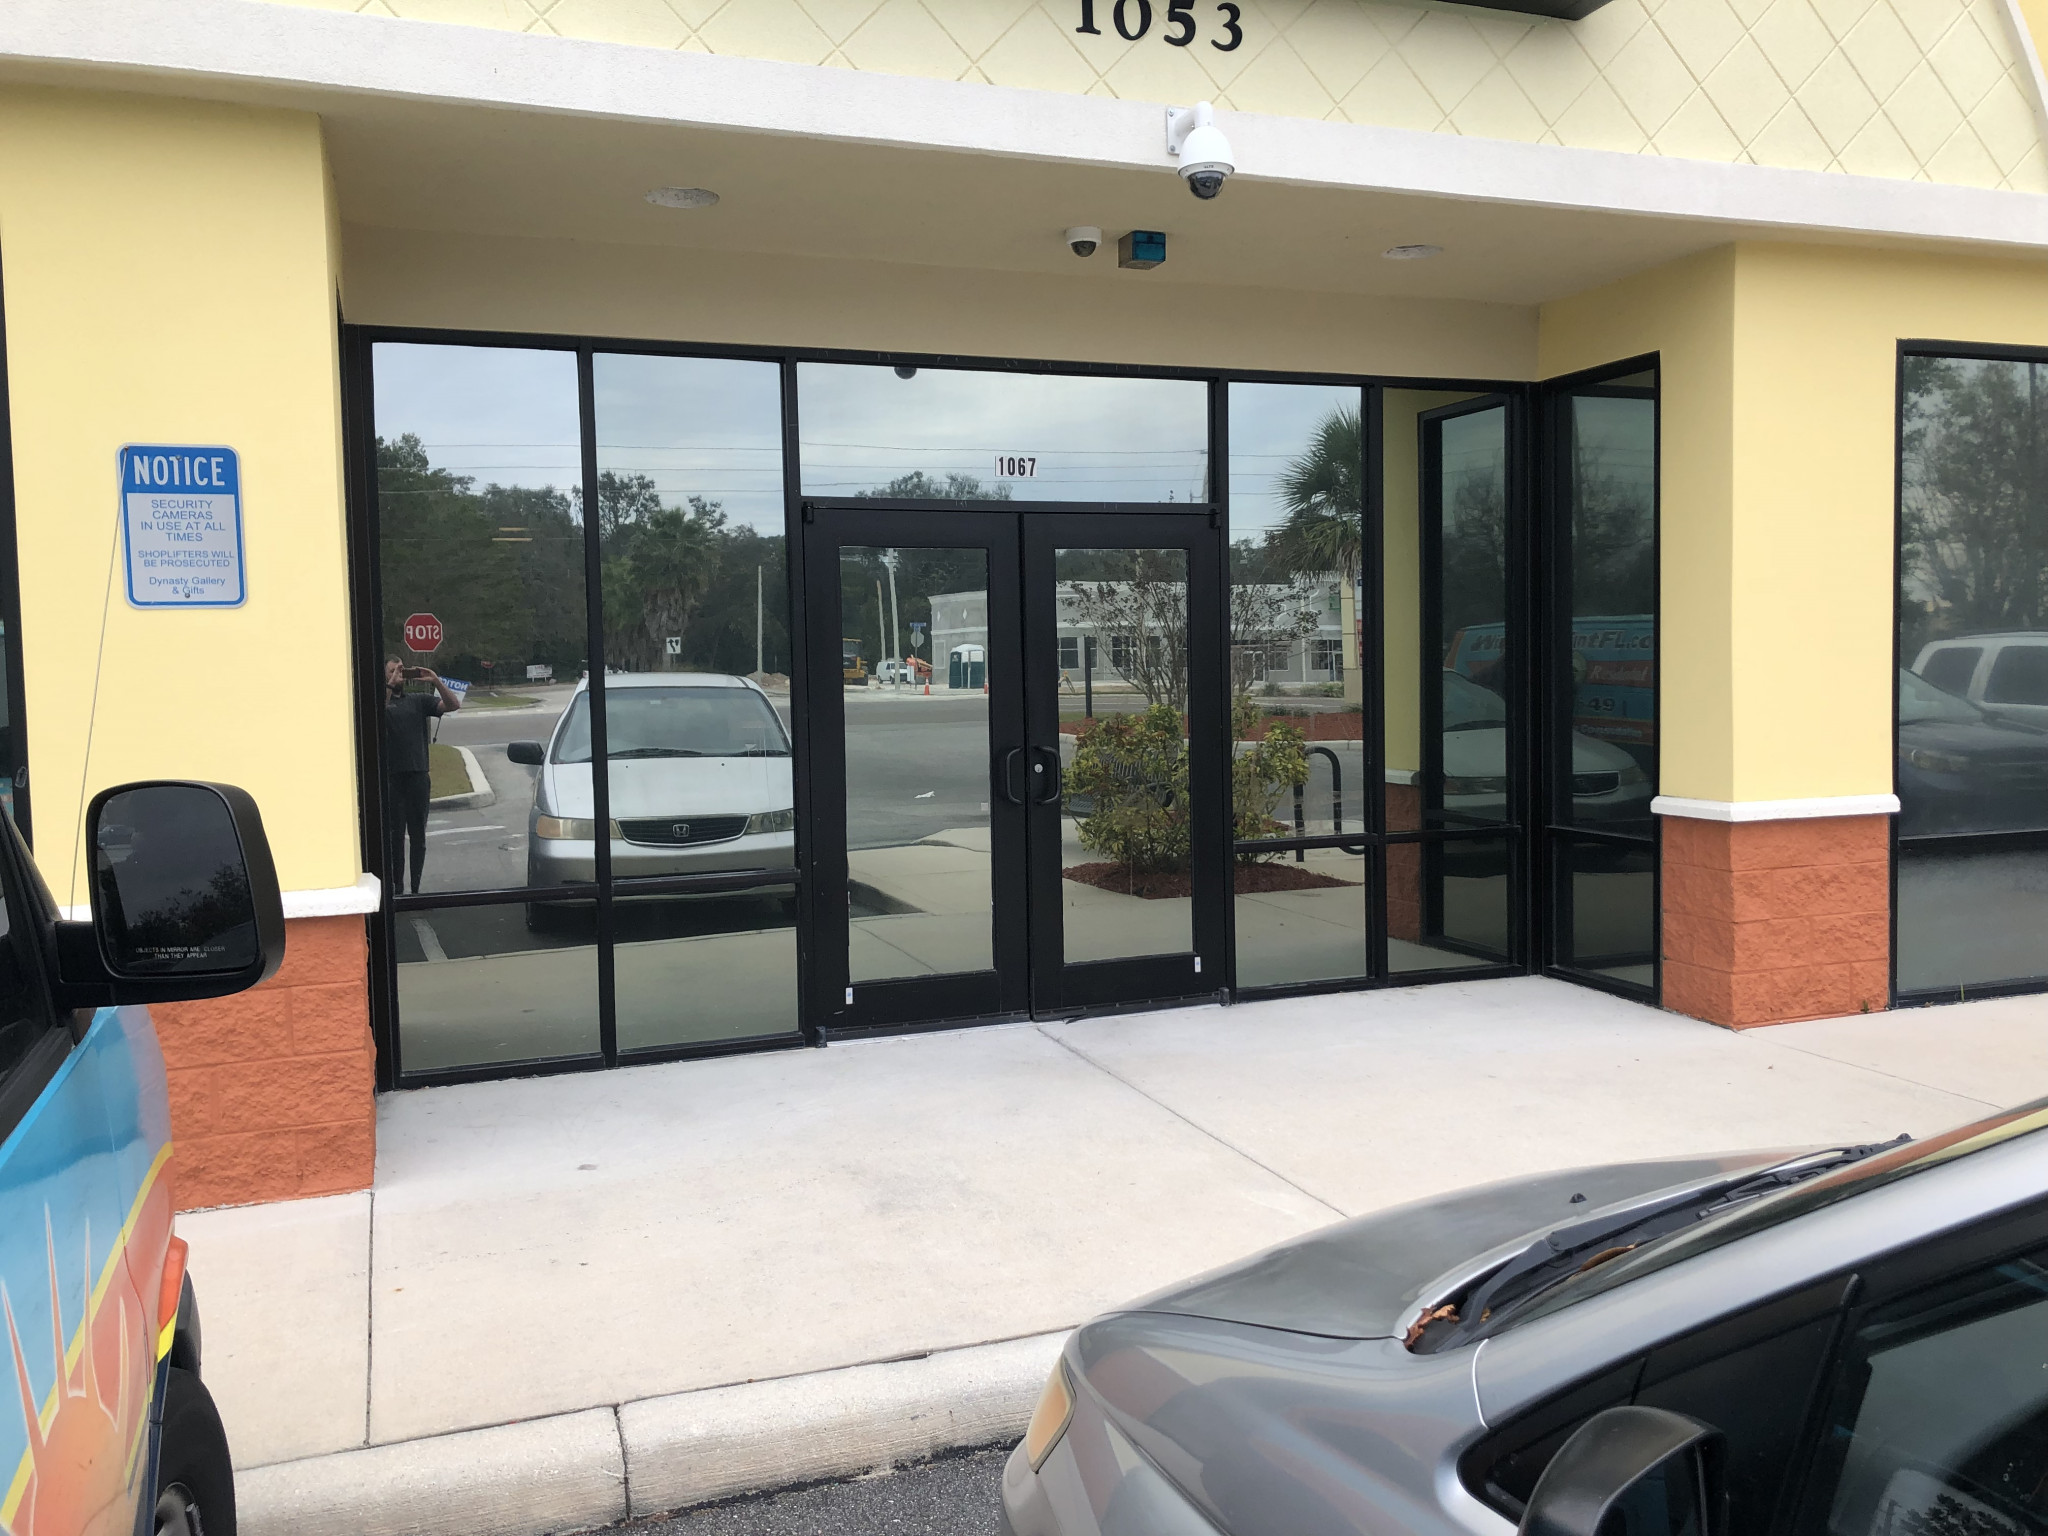 Security Window Film >> Mirror Tint for Privacy Commercial Window Tint in Orlando - Ultimate Window Tinting